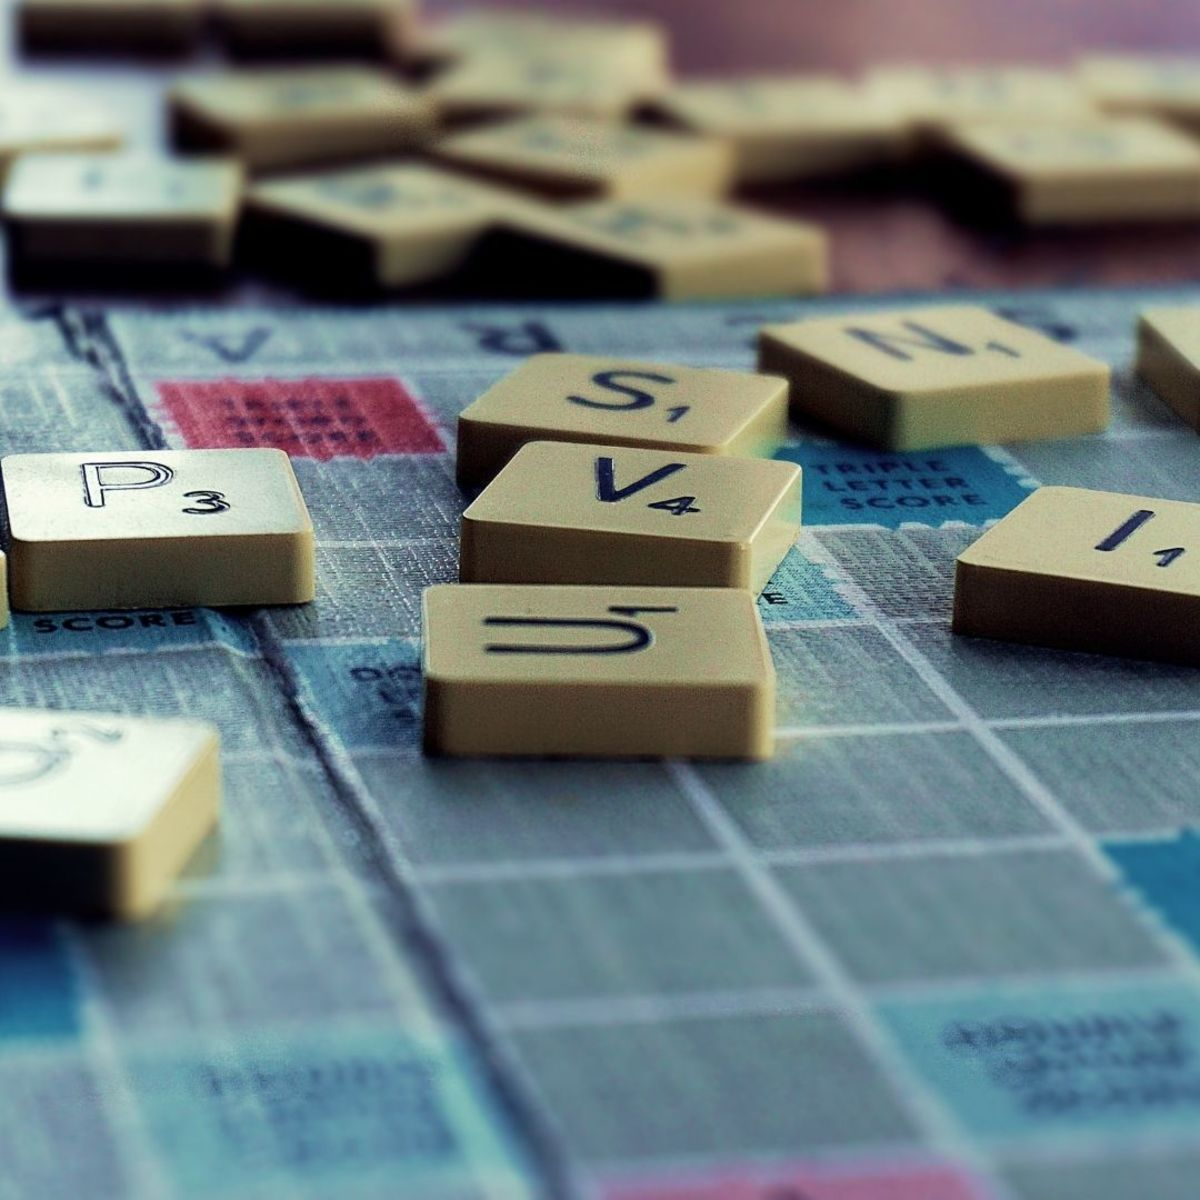 Tips to improve your Scrabble game